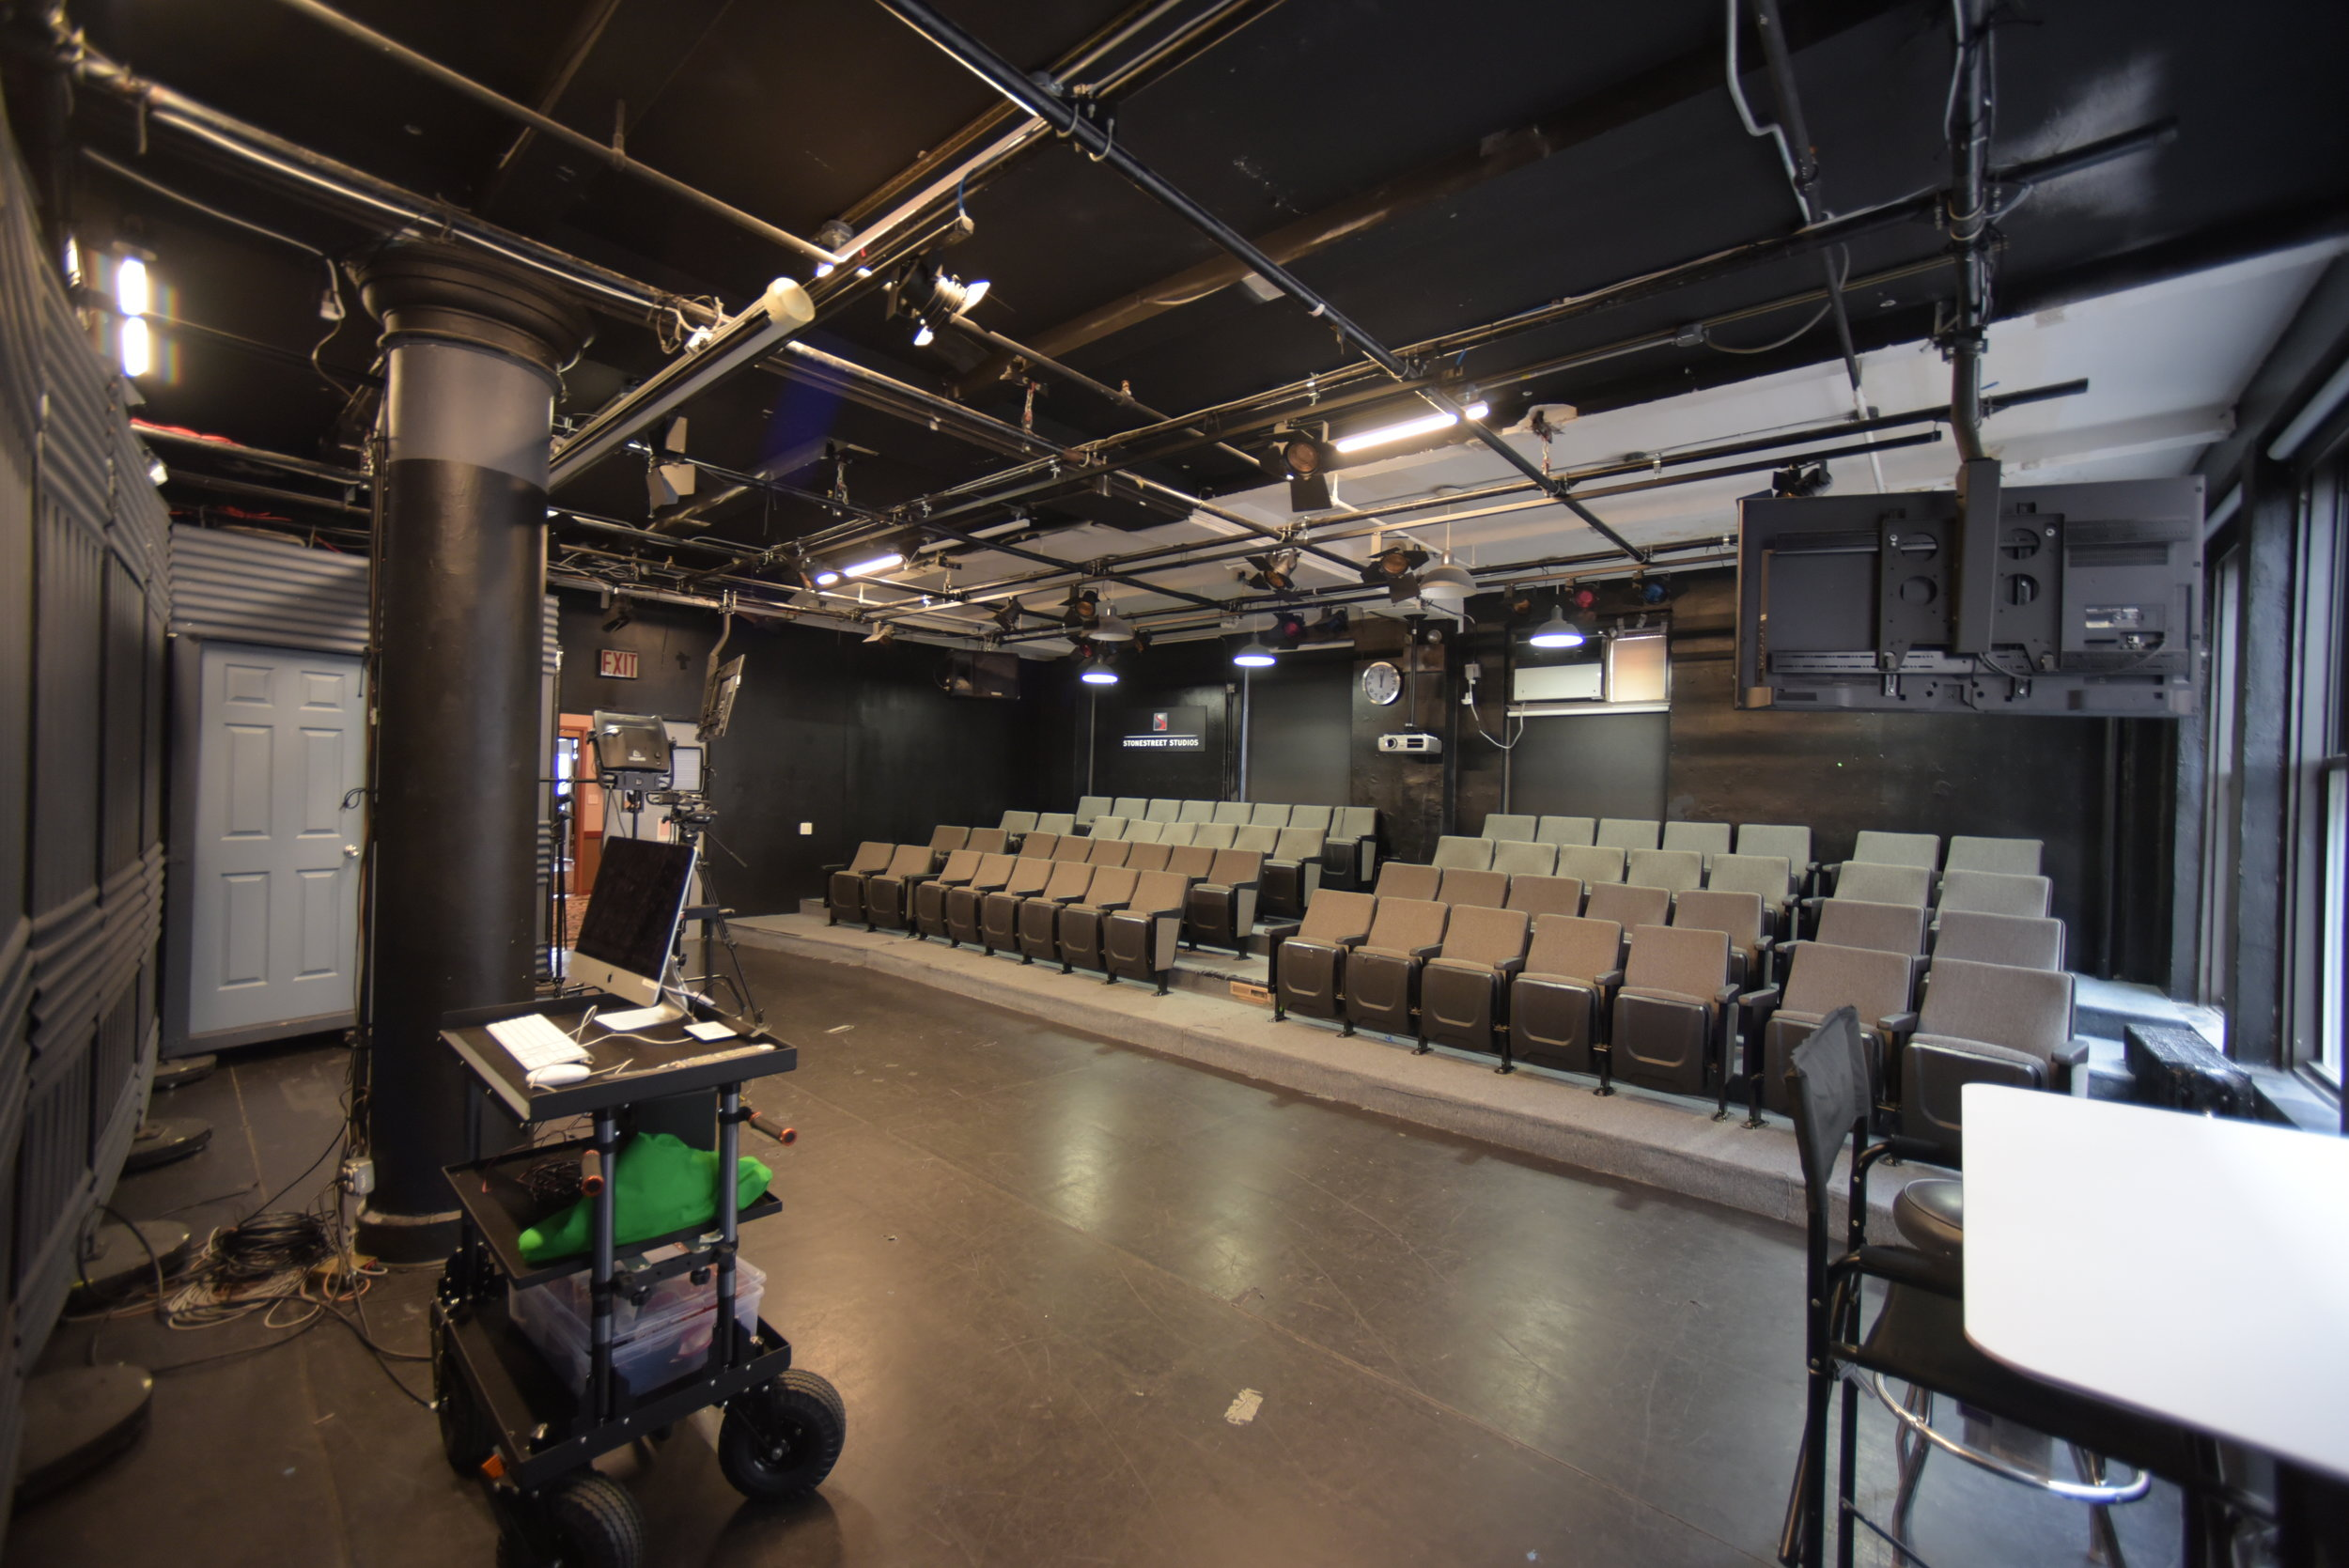 Studio 8-A - The Stonestreet Theater. Studio 8-A contains sixty raked seats facing a stage with dimensions of 16 ft by 30 ft. The ceiling is approximately 11.5 ft. high. The stage contains a full light grid and is controlled by a 48 dimmer board from the light booth. The stage can be viewed directly or by a video camera attached to the grid. Rental of Studio 8-A includes the use of the Engineering Room which contains the light board.